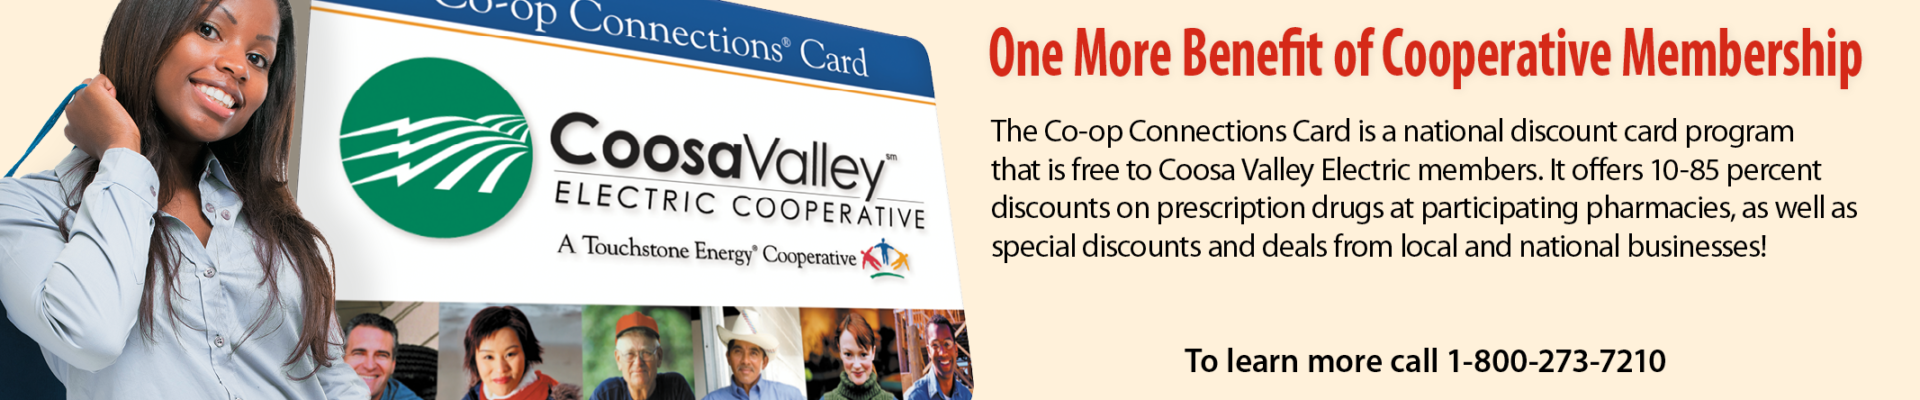 One more benefit of cooperative membership